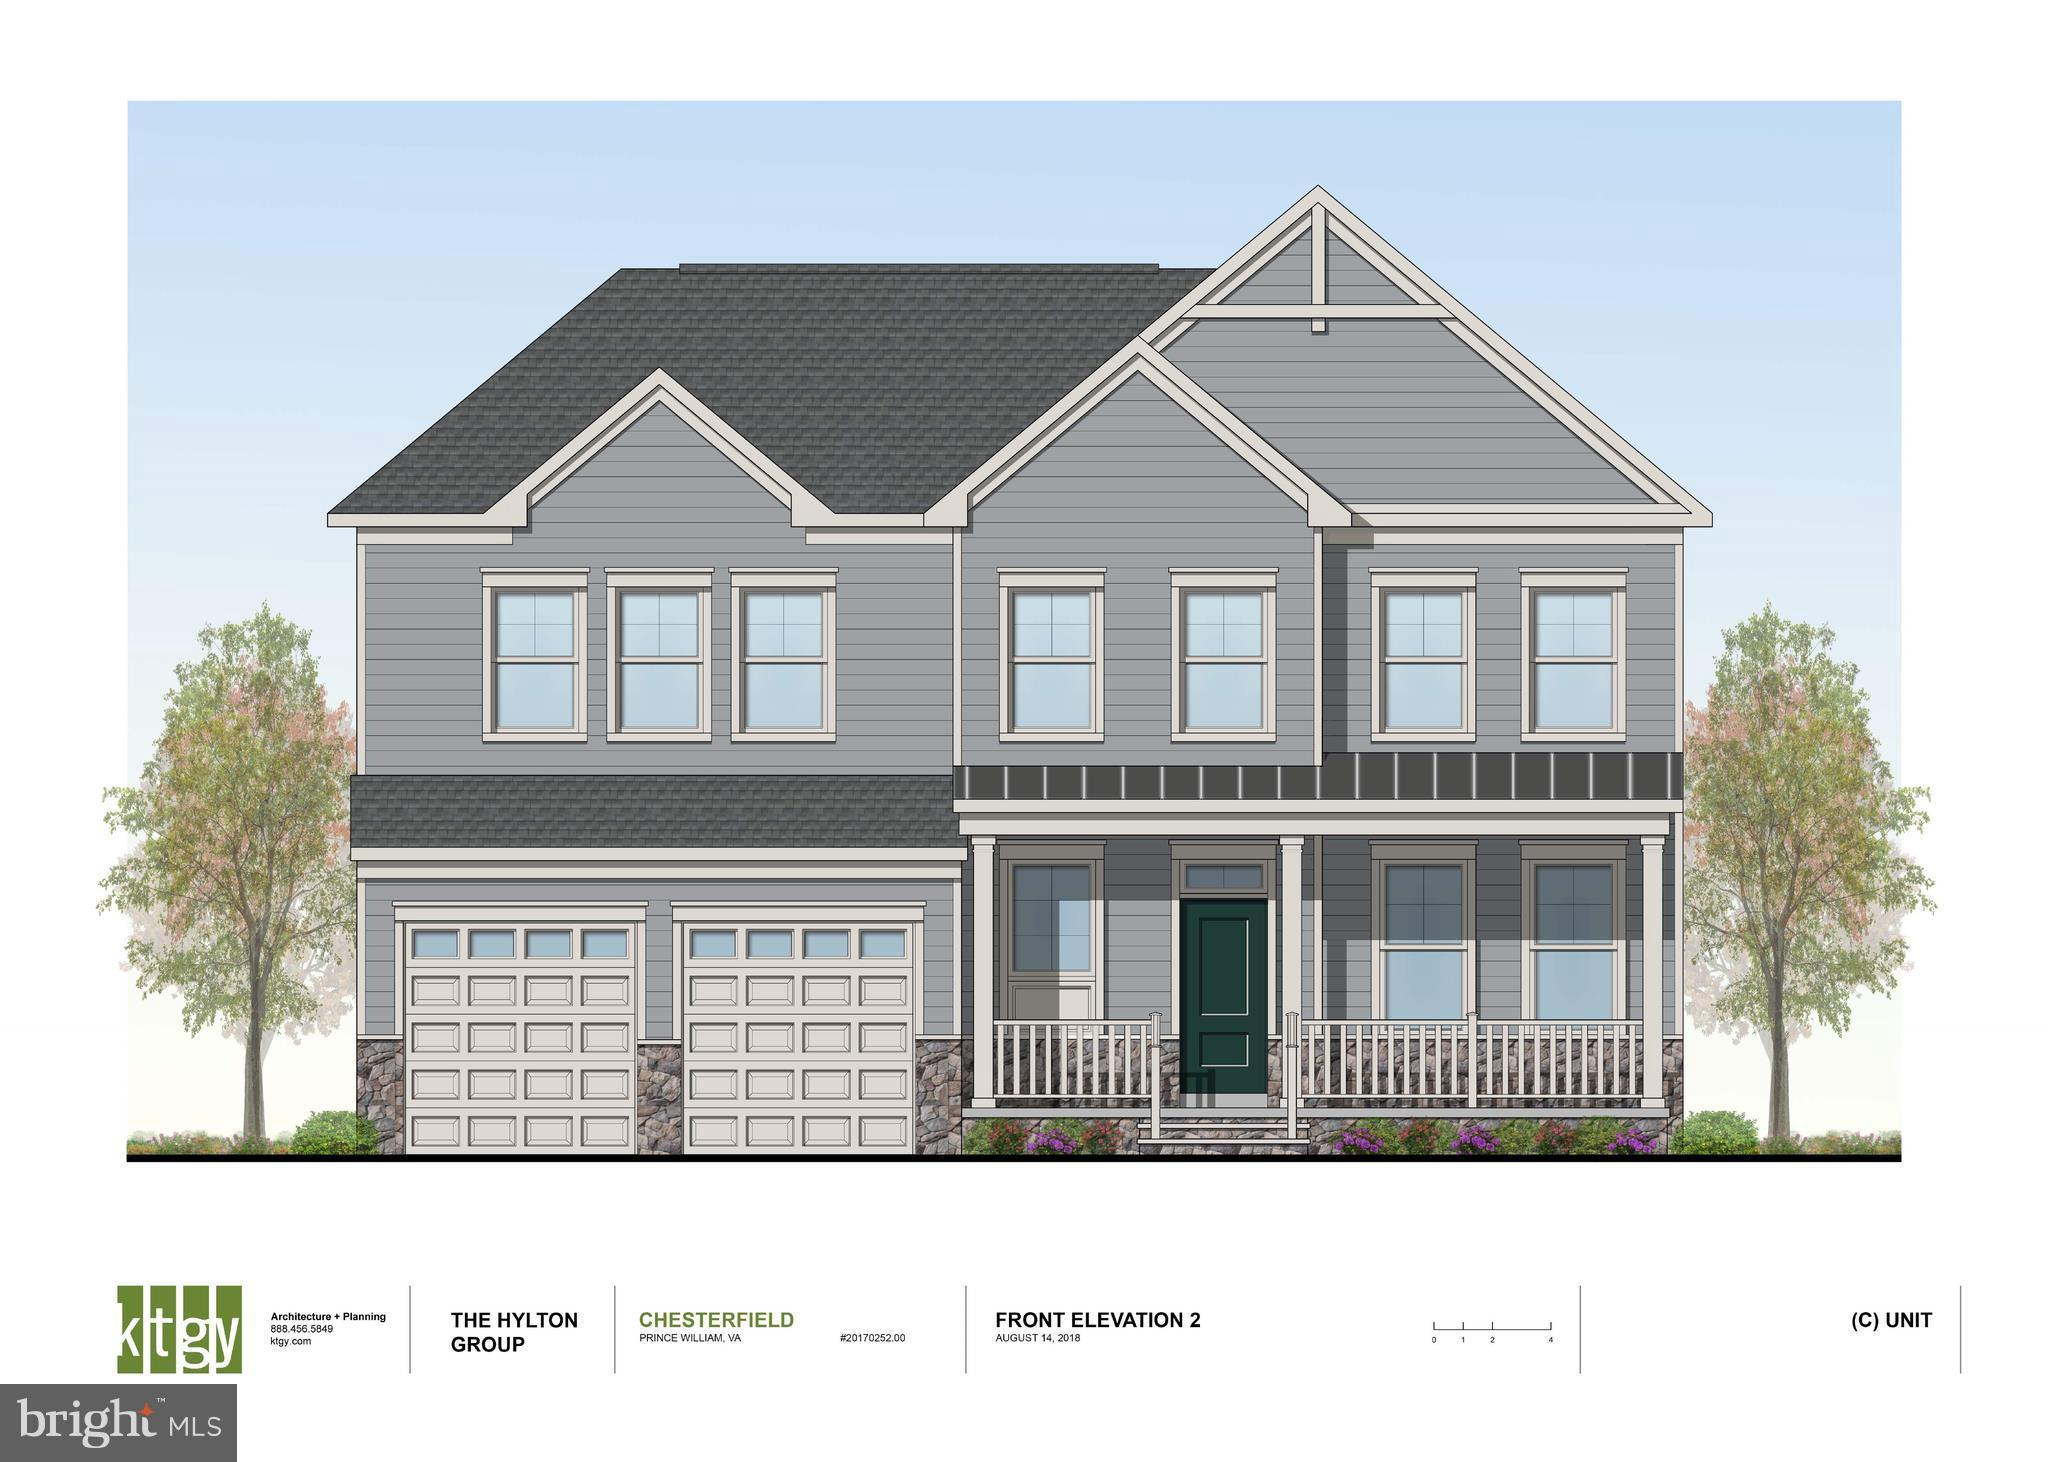 """**Brand New Chesterfield Model to be built.  Kitchen with 42"""" Cabinets, Granite & SS Appliances.  HW Floors in Foyer & Kitchen. 4 Piece Crown Molding & Chair Rail. Ceramic tile in all Baths. Concrete Driveway, Sodded Yard, Landscaping, Cast Iron Mailbox & So much more in options!"""